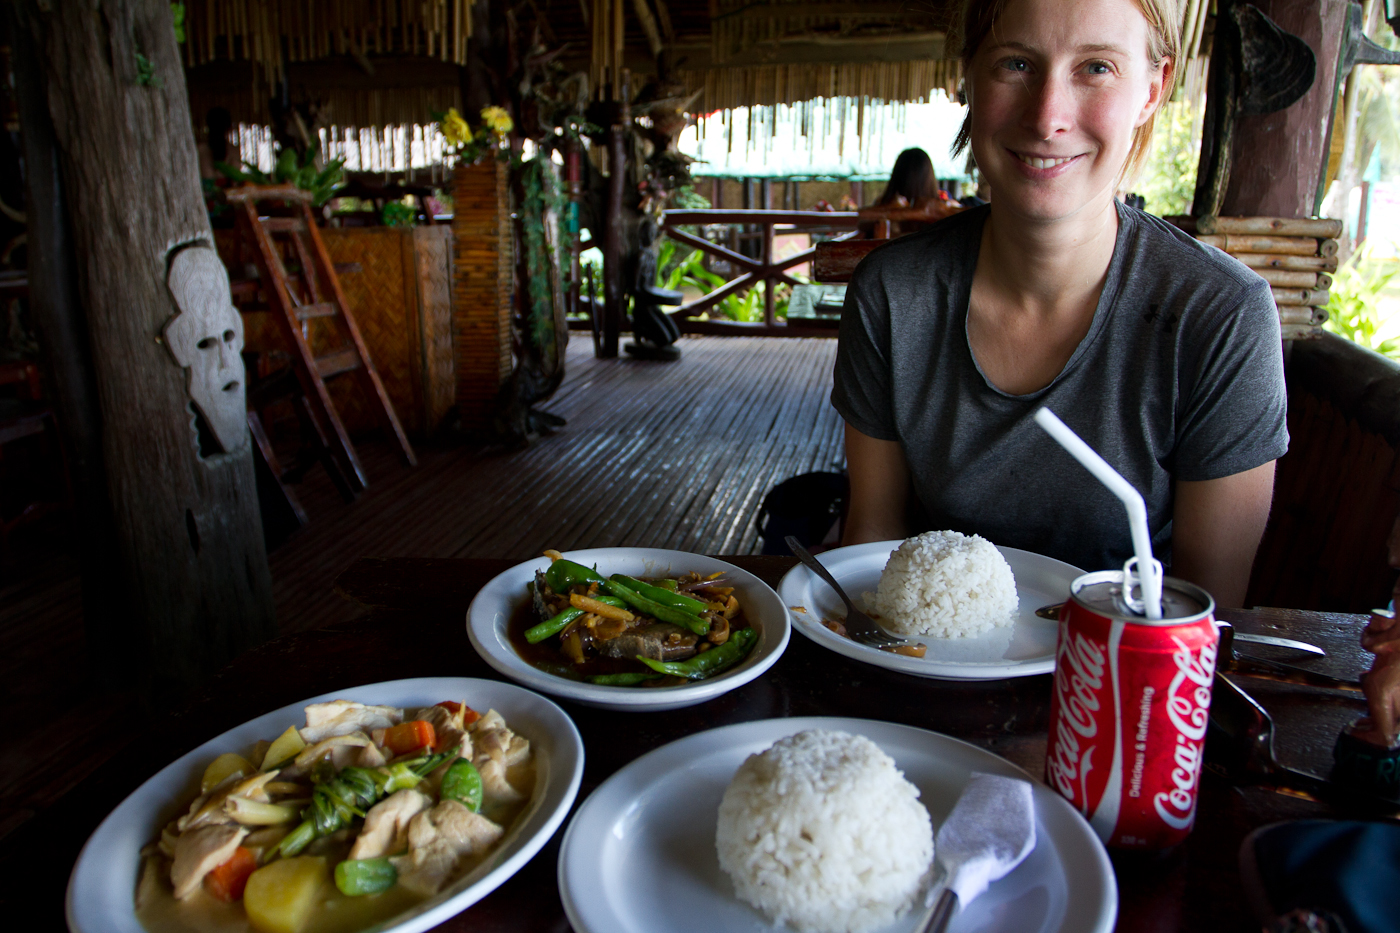 Manuela posing with our meal in Sabang on the island of Palawan